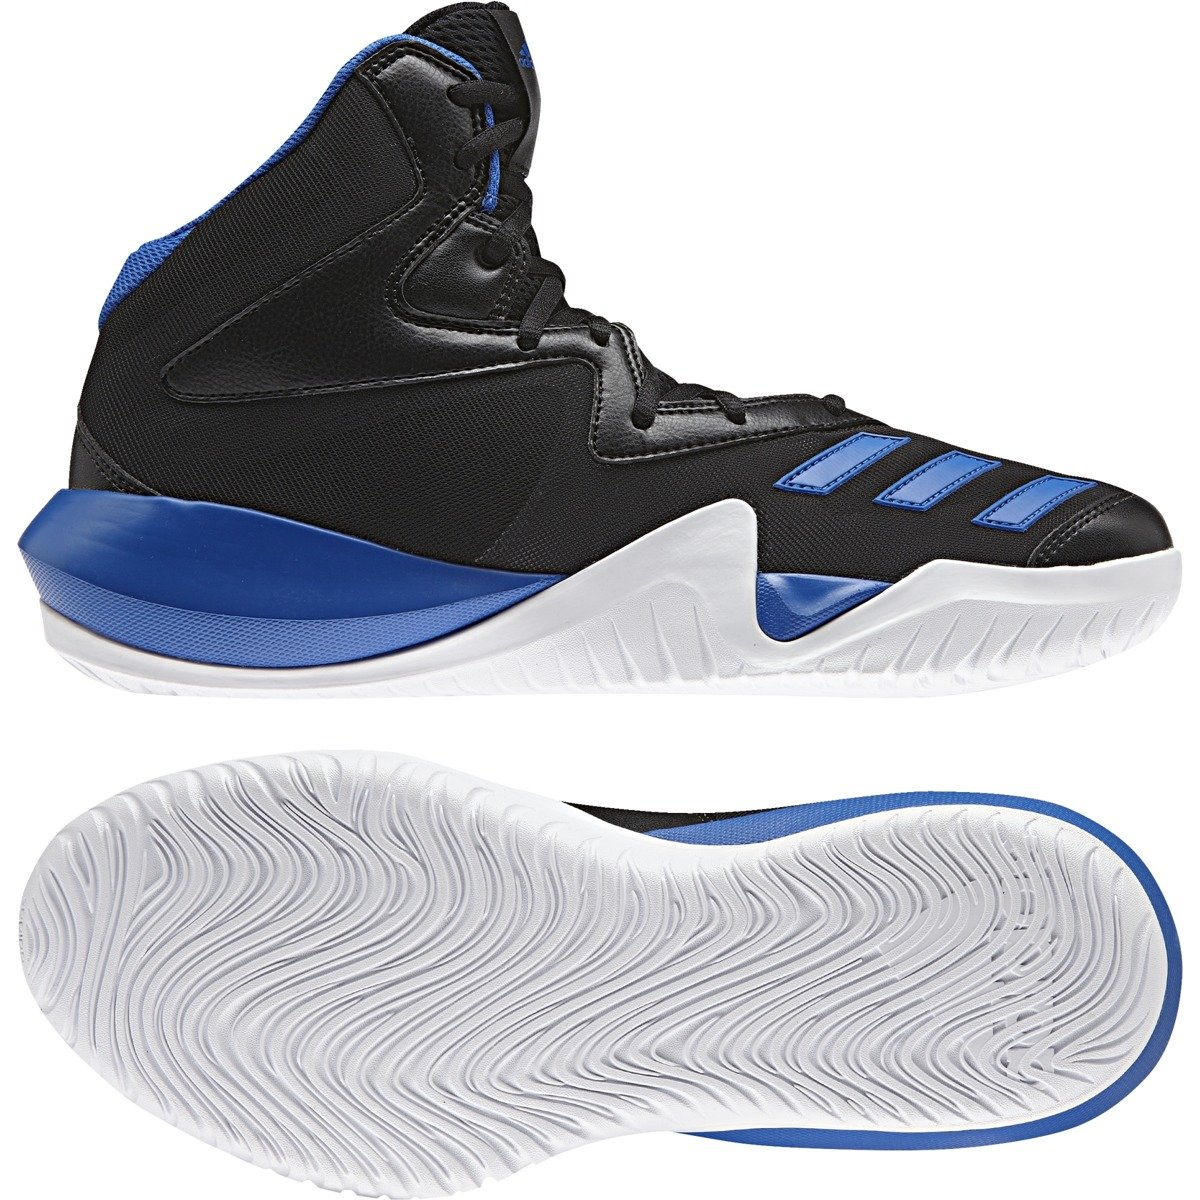 adidas basketball shoes. adidas 2017 basketball shoes